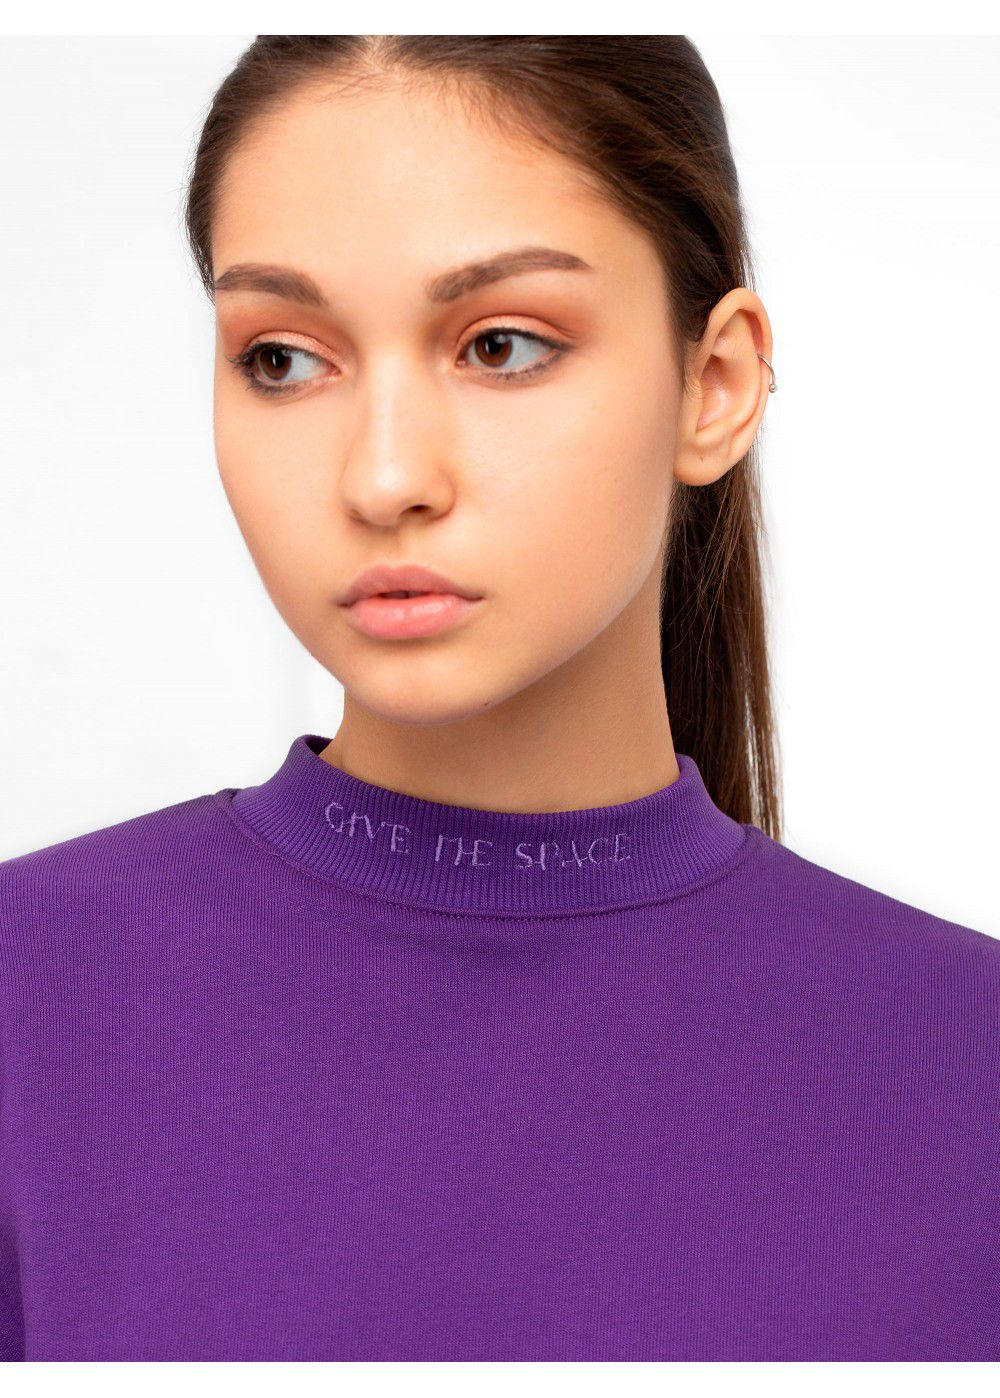 Give Me Space Purple Sweatshirt